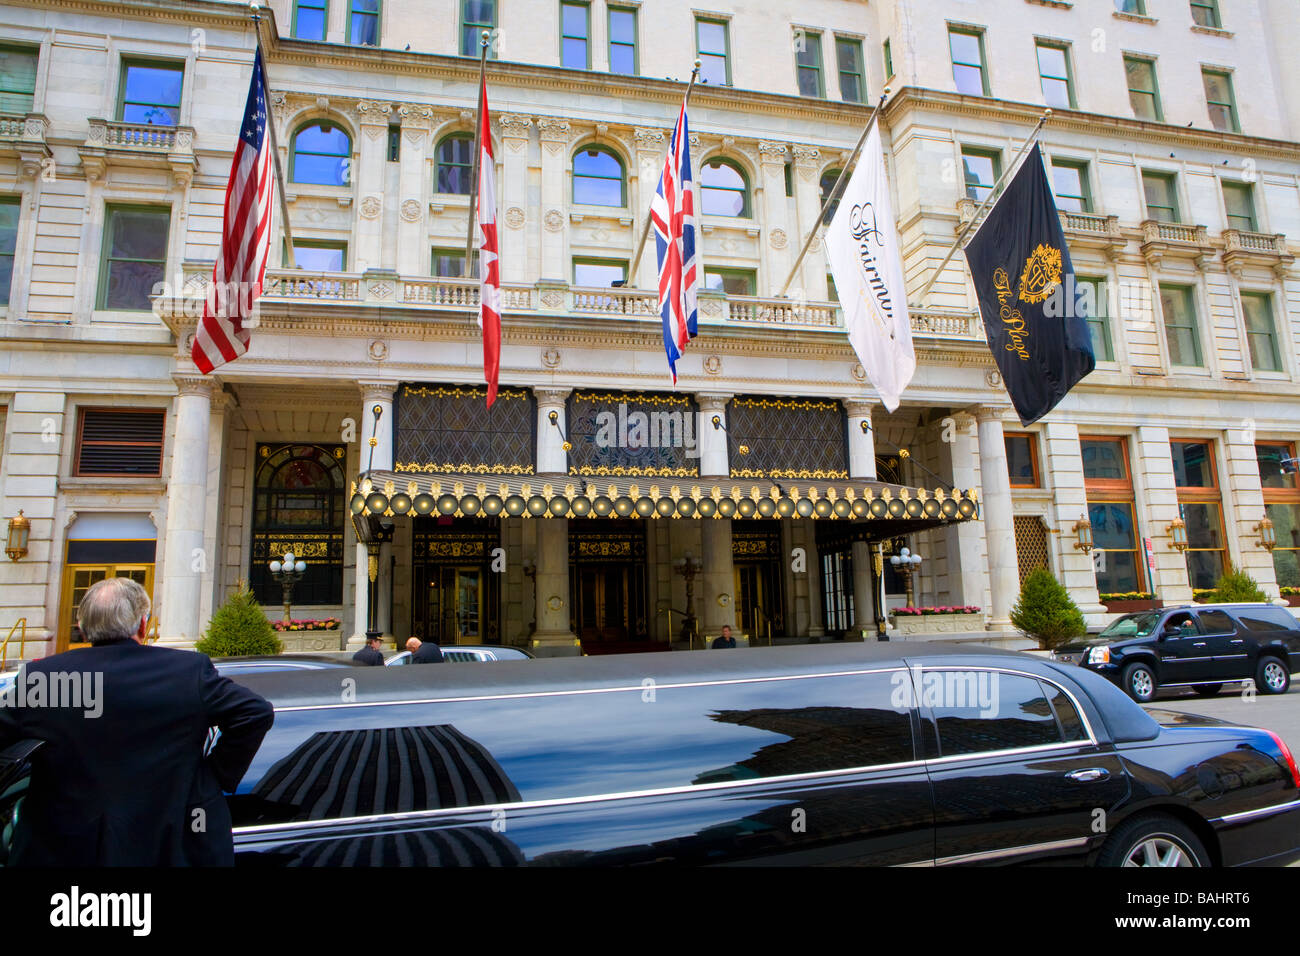 Limousines line up at The Plaza Hotel across from Central Park New York City - Stock Image